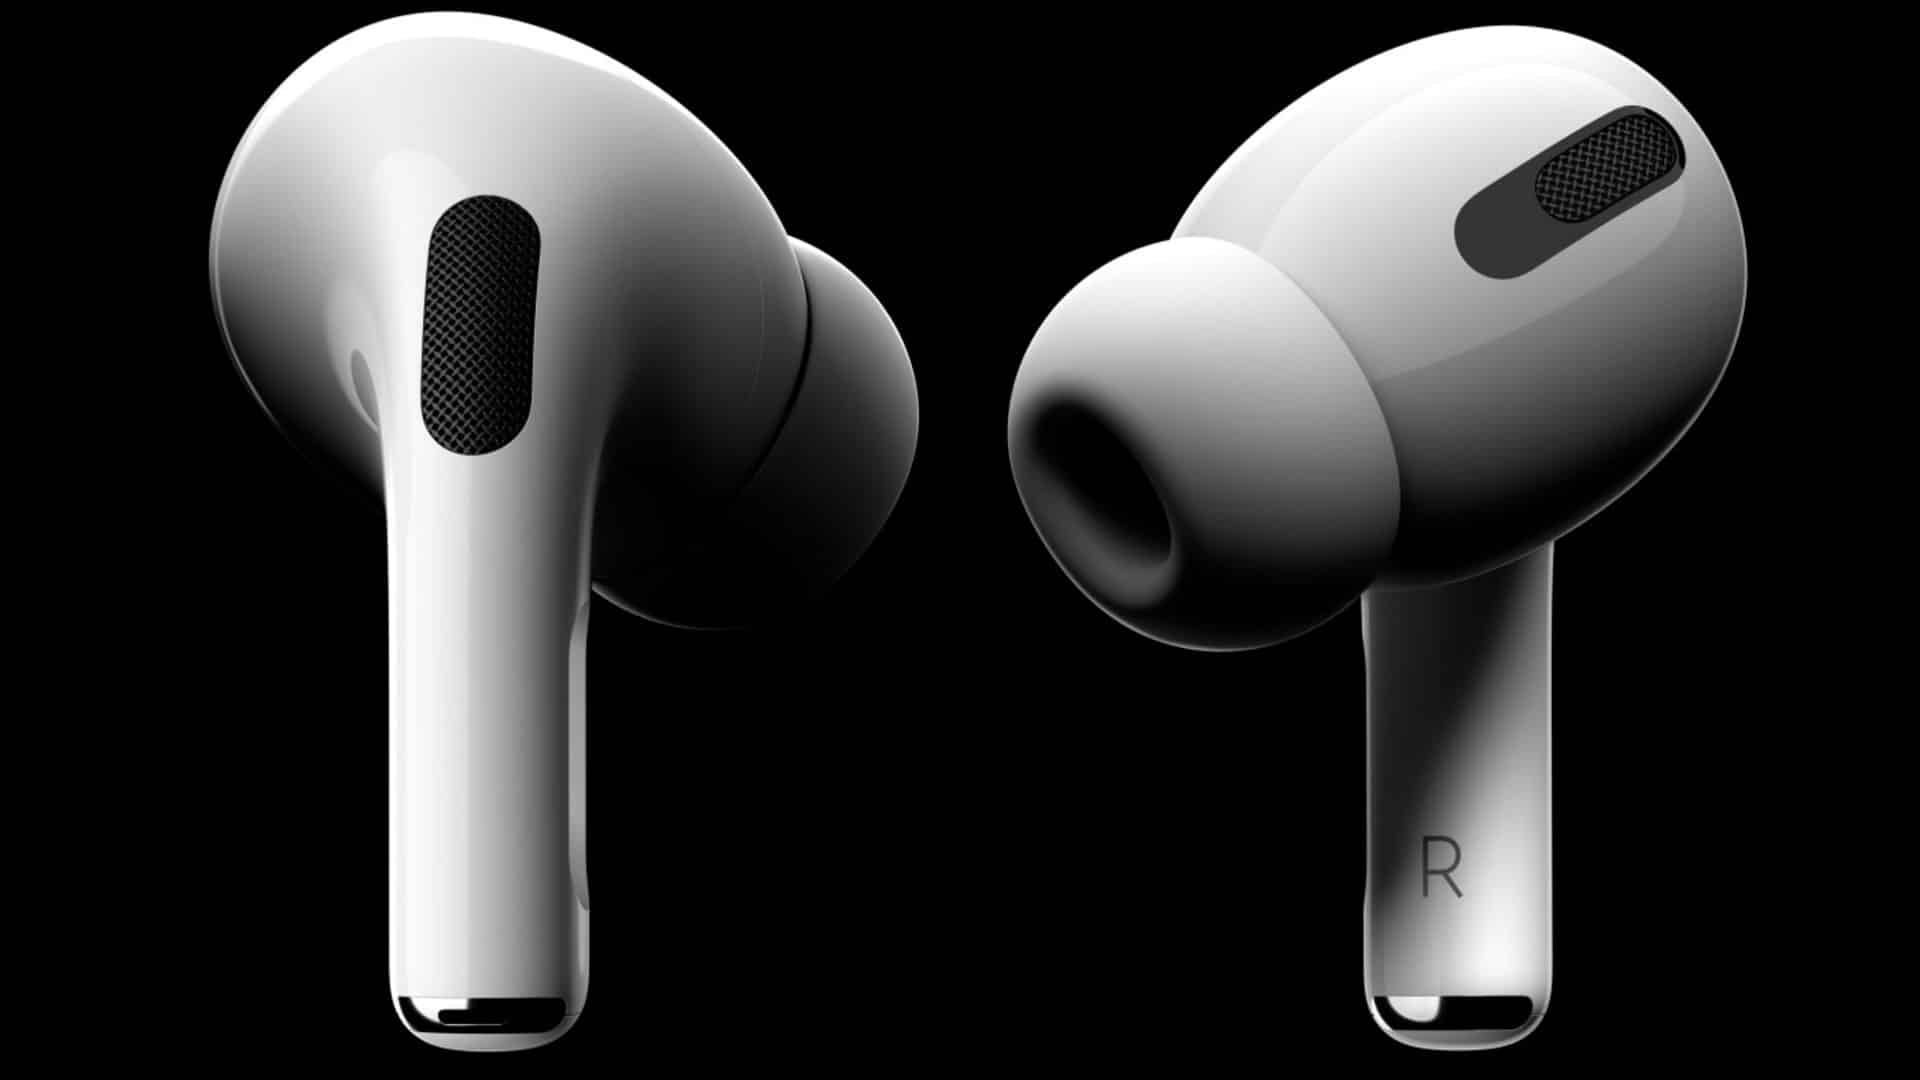 AirPod Pro launched